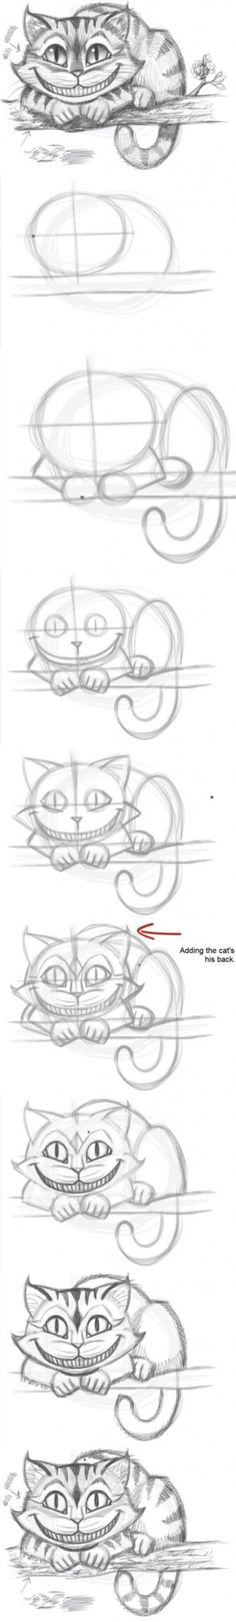 DIY Easily Draw the Cheshire Cat Tutorial